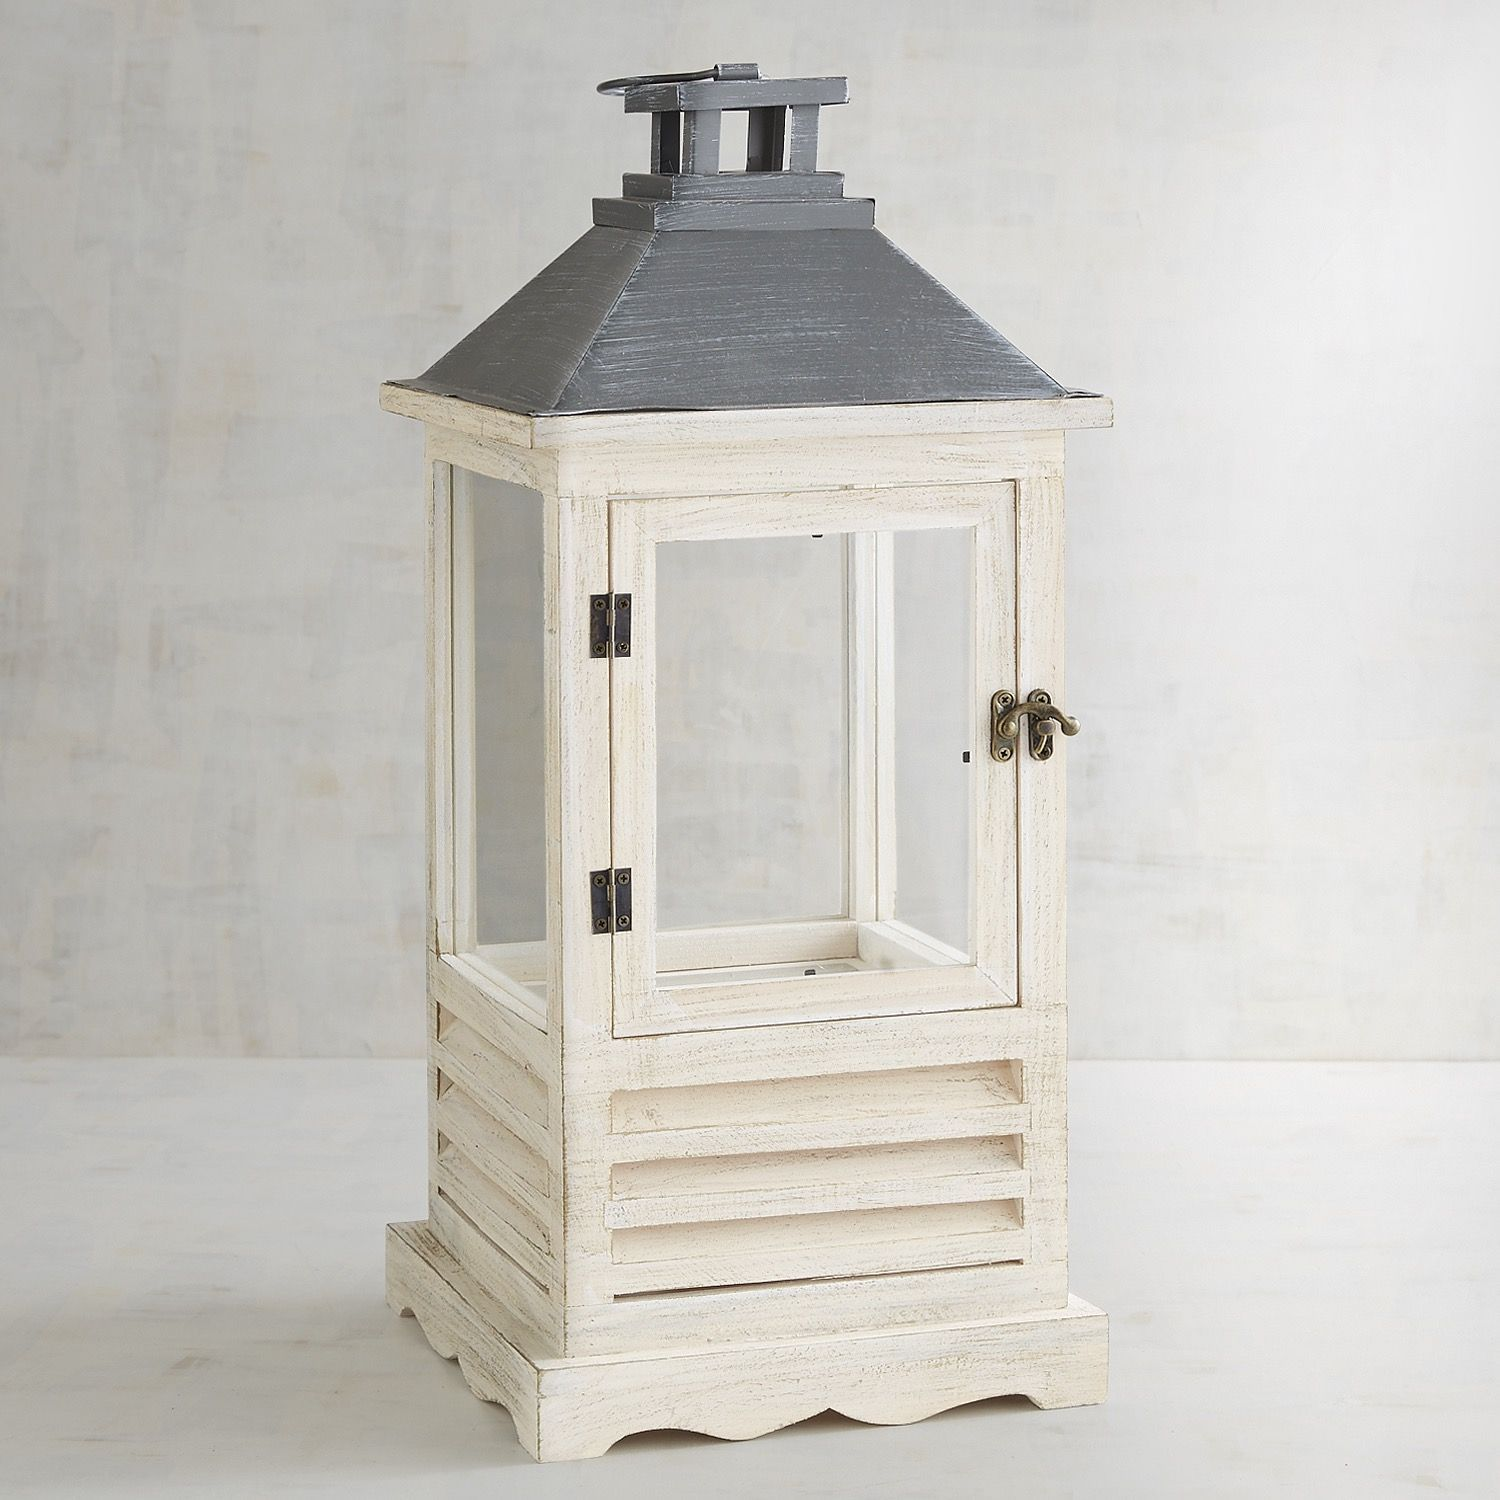 White wooden shutter lantern wooden shutters and products